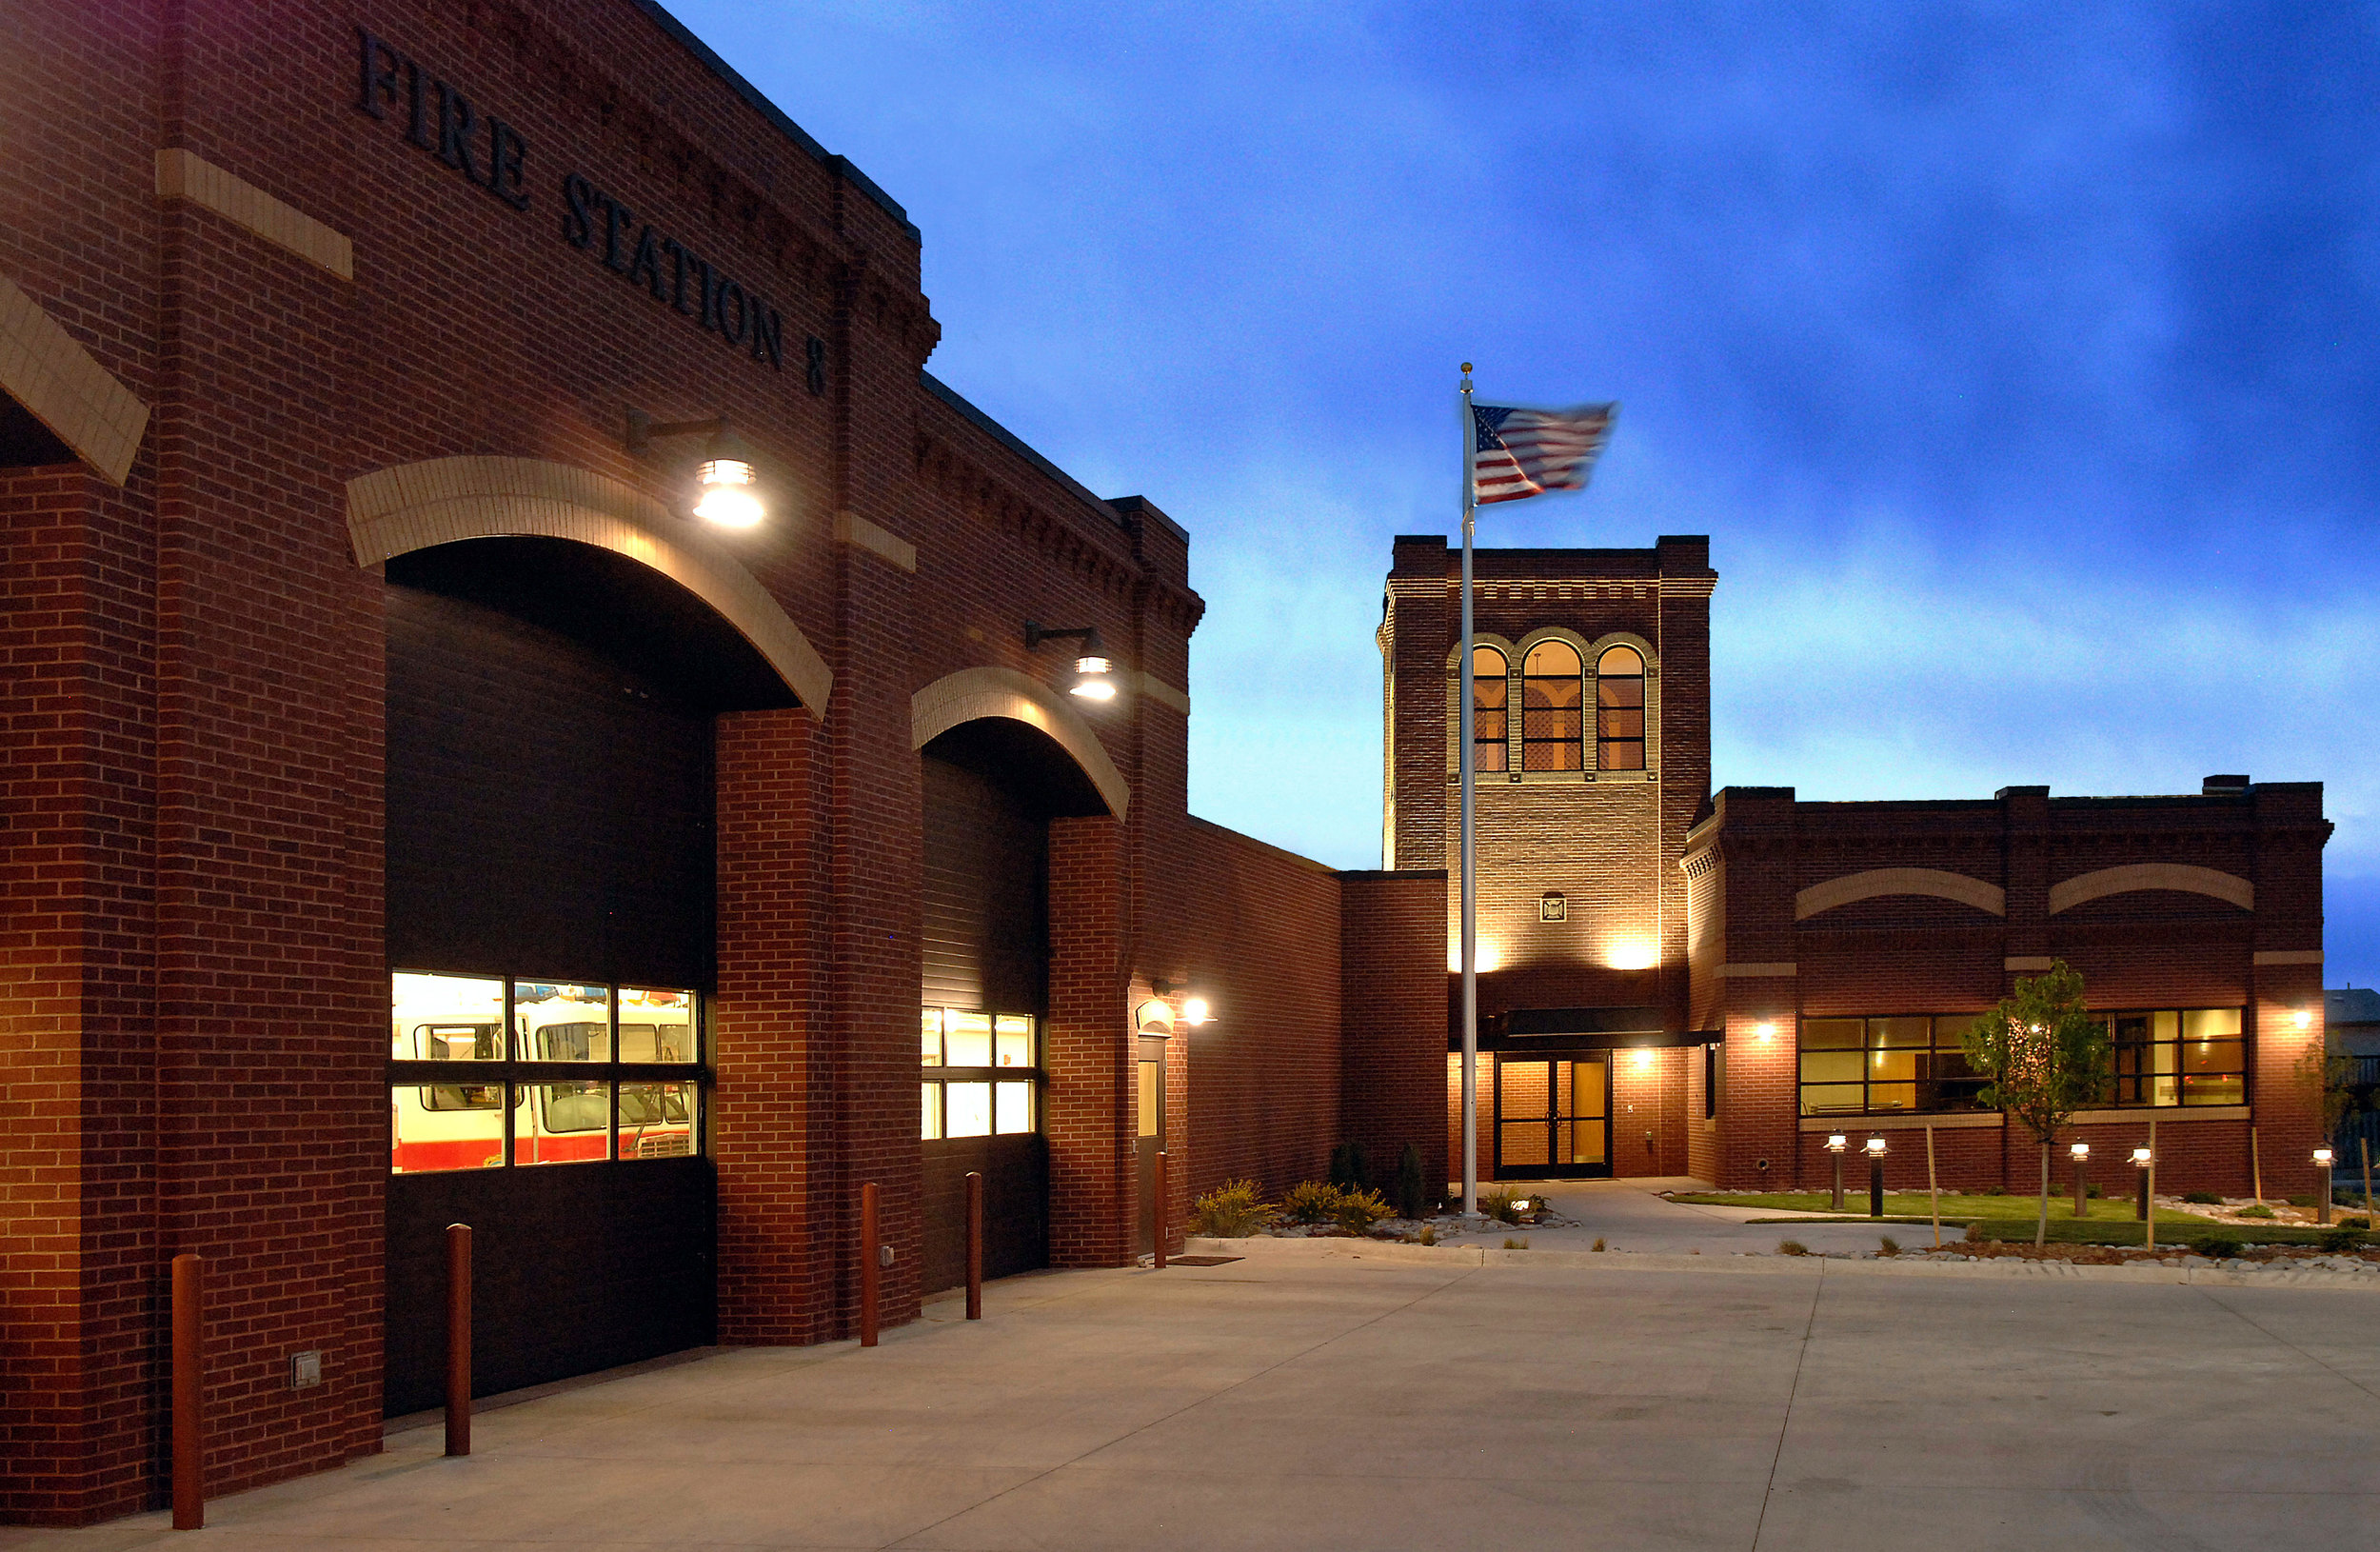 FIRE STATION No. 8 - Colorado Springs, CO